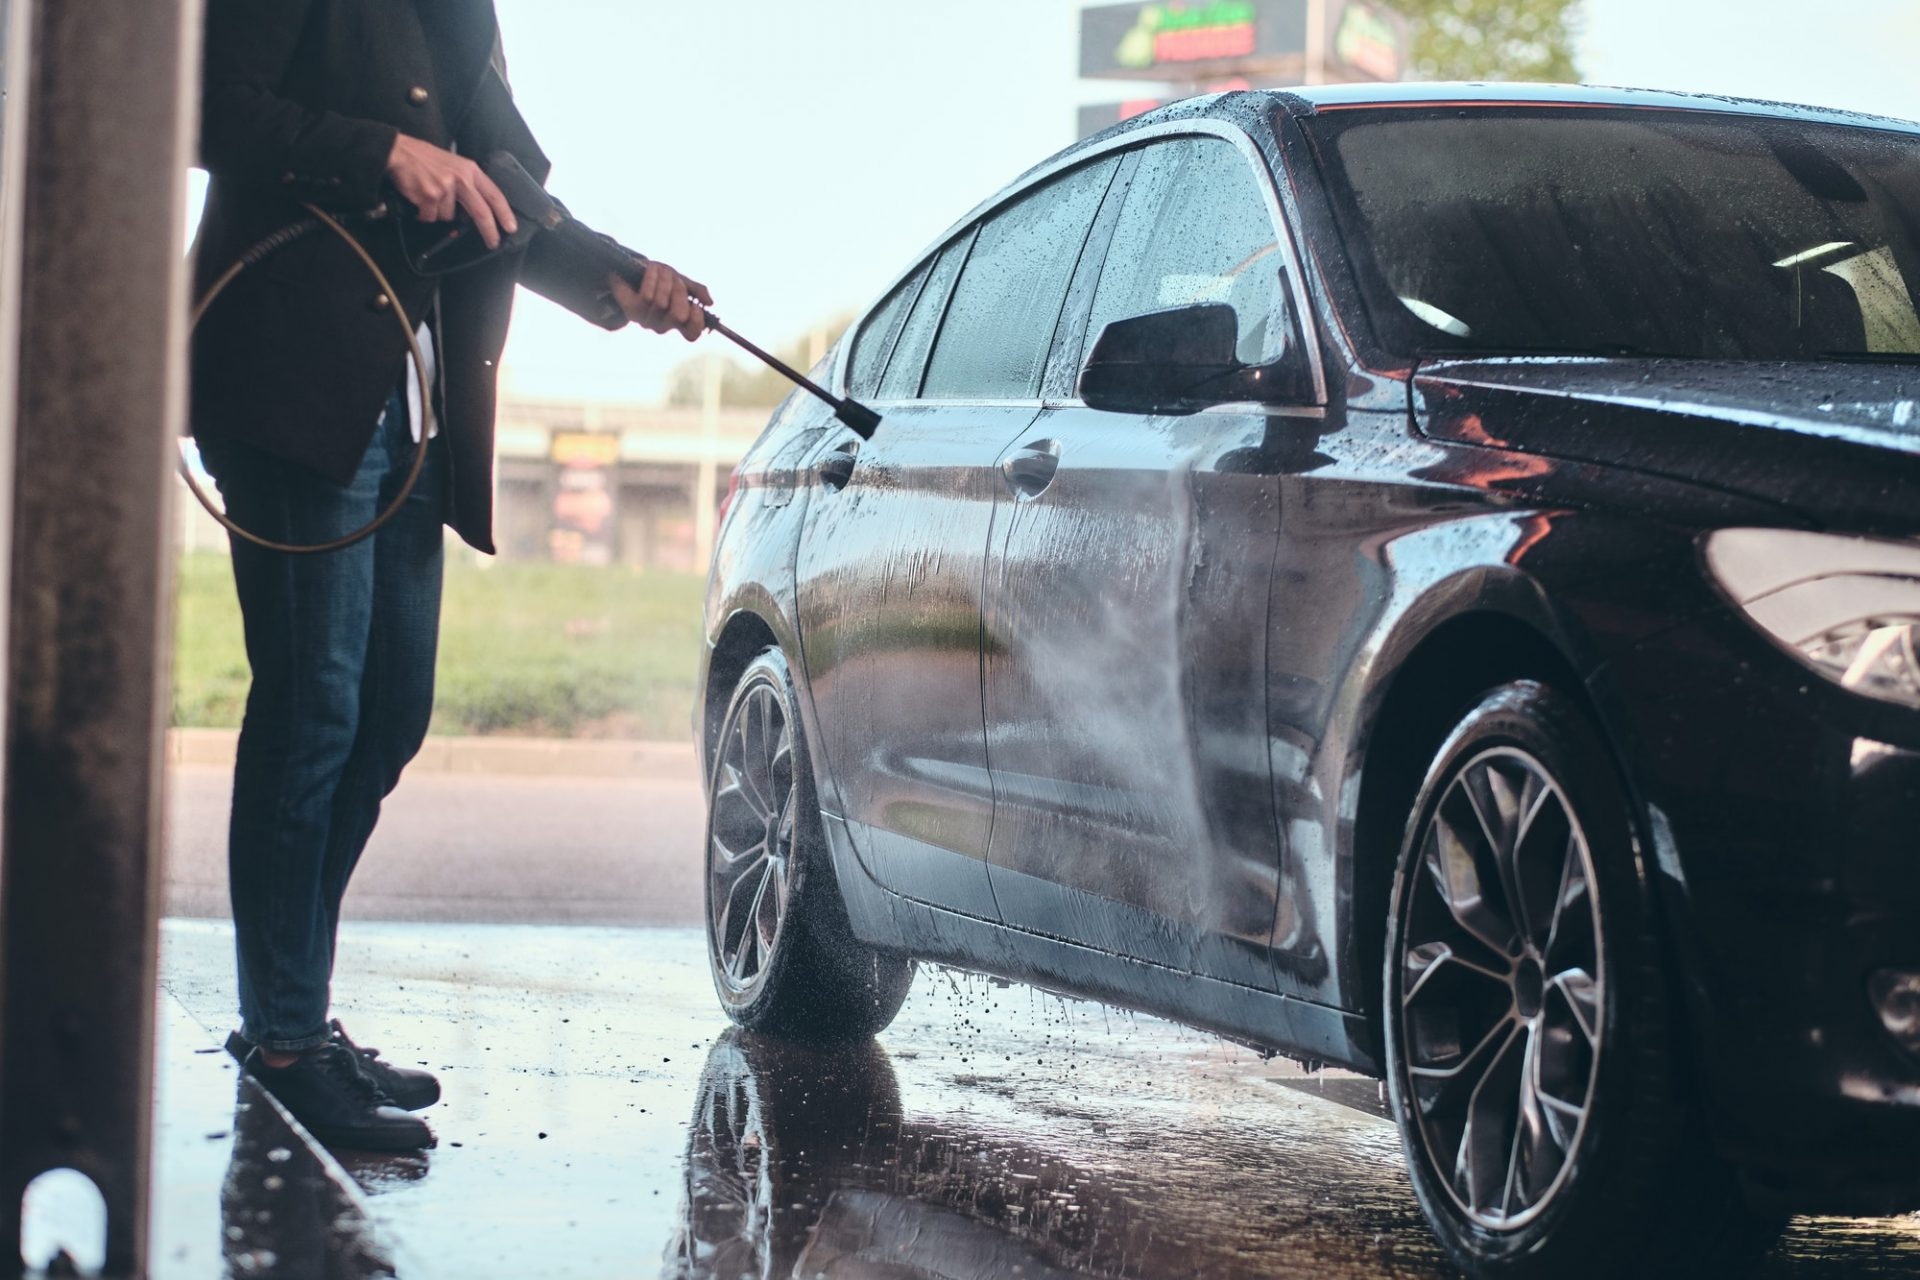 Busy man is washing his own car at car washing station.